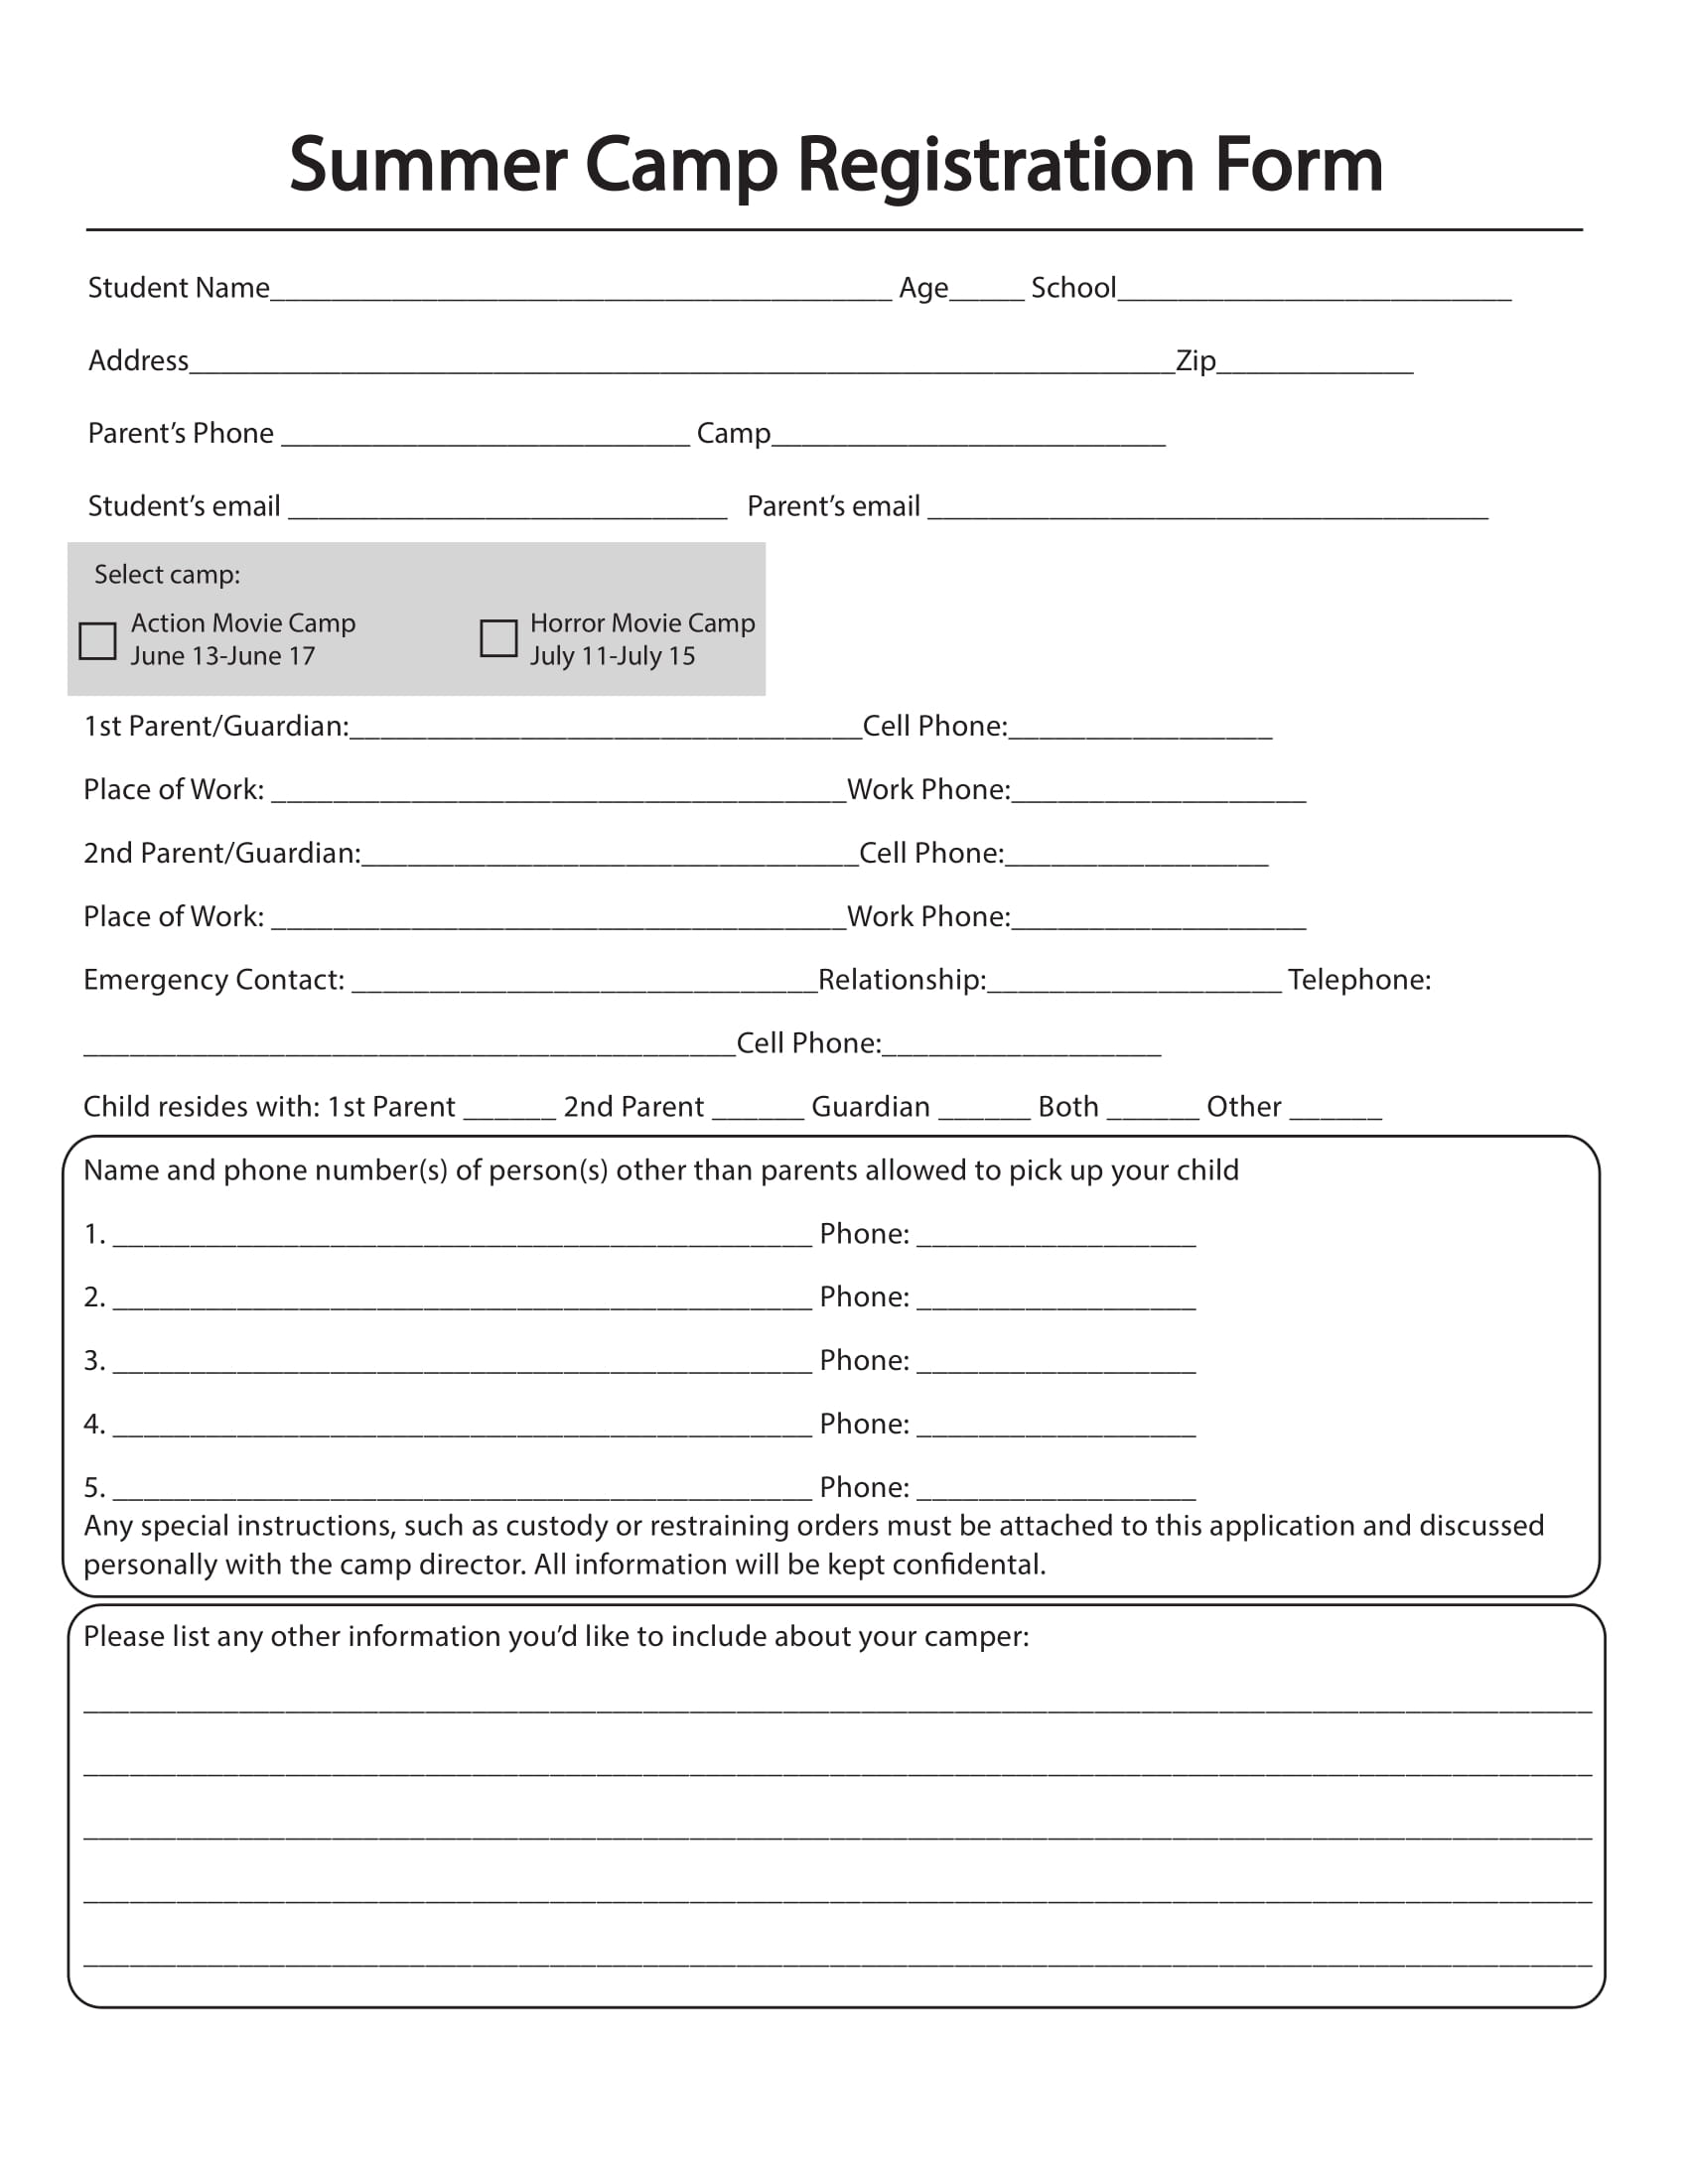 summer camp registration form